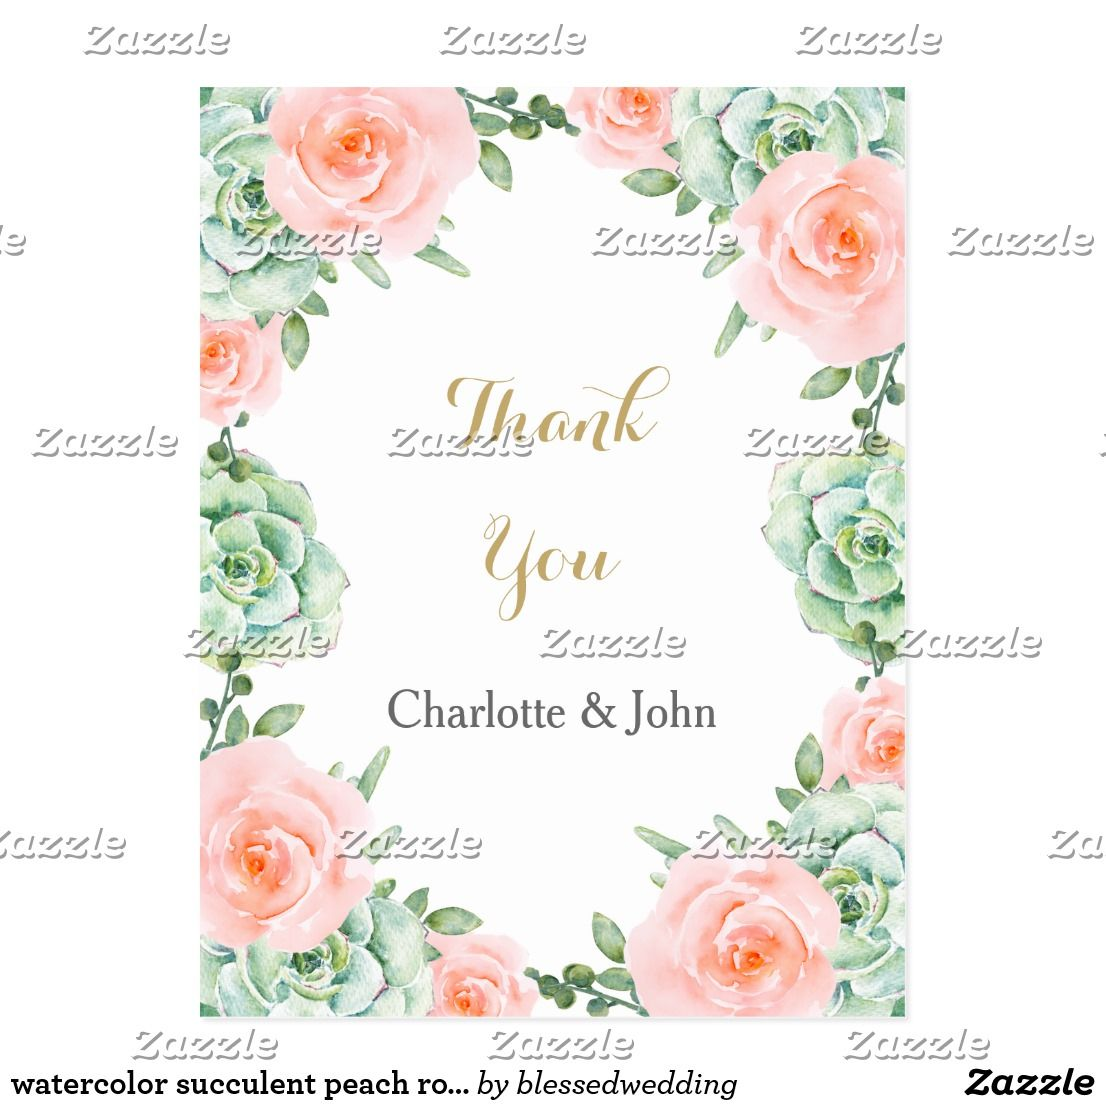 Watercolor succulent peach roses thank you notes postcard